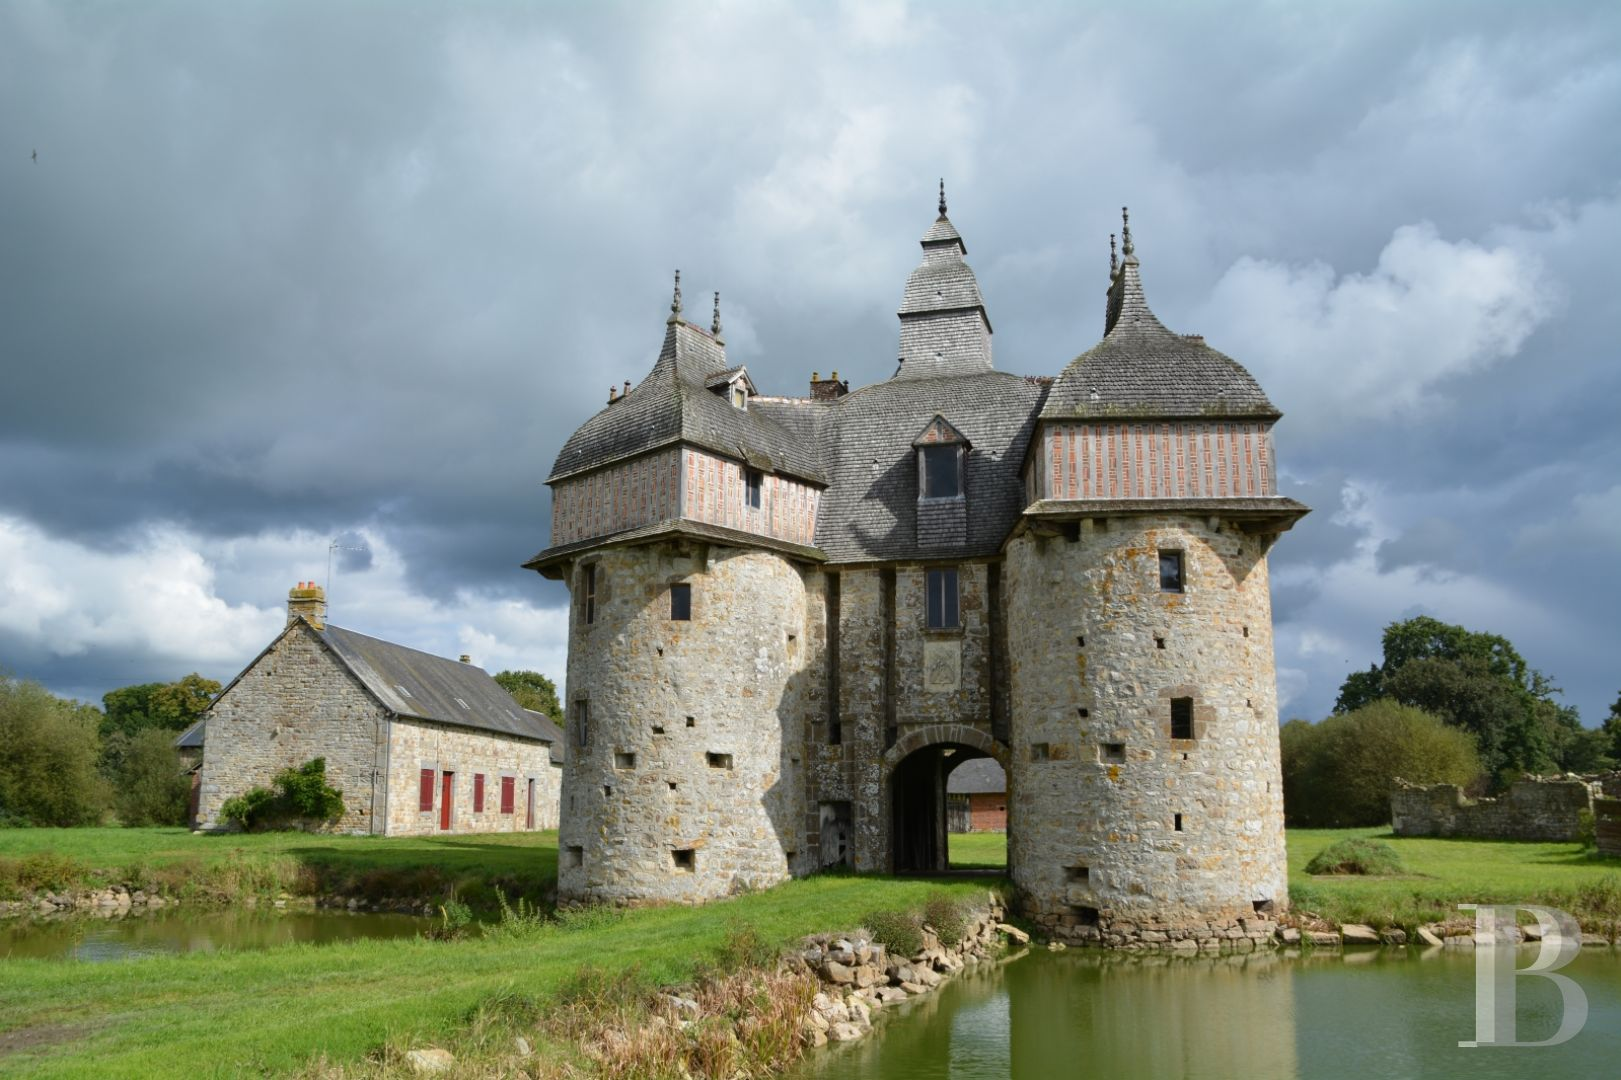 France mansions for sale lower normandy manors historic - 1 zoom